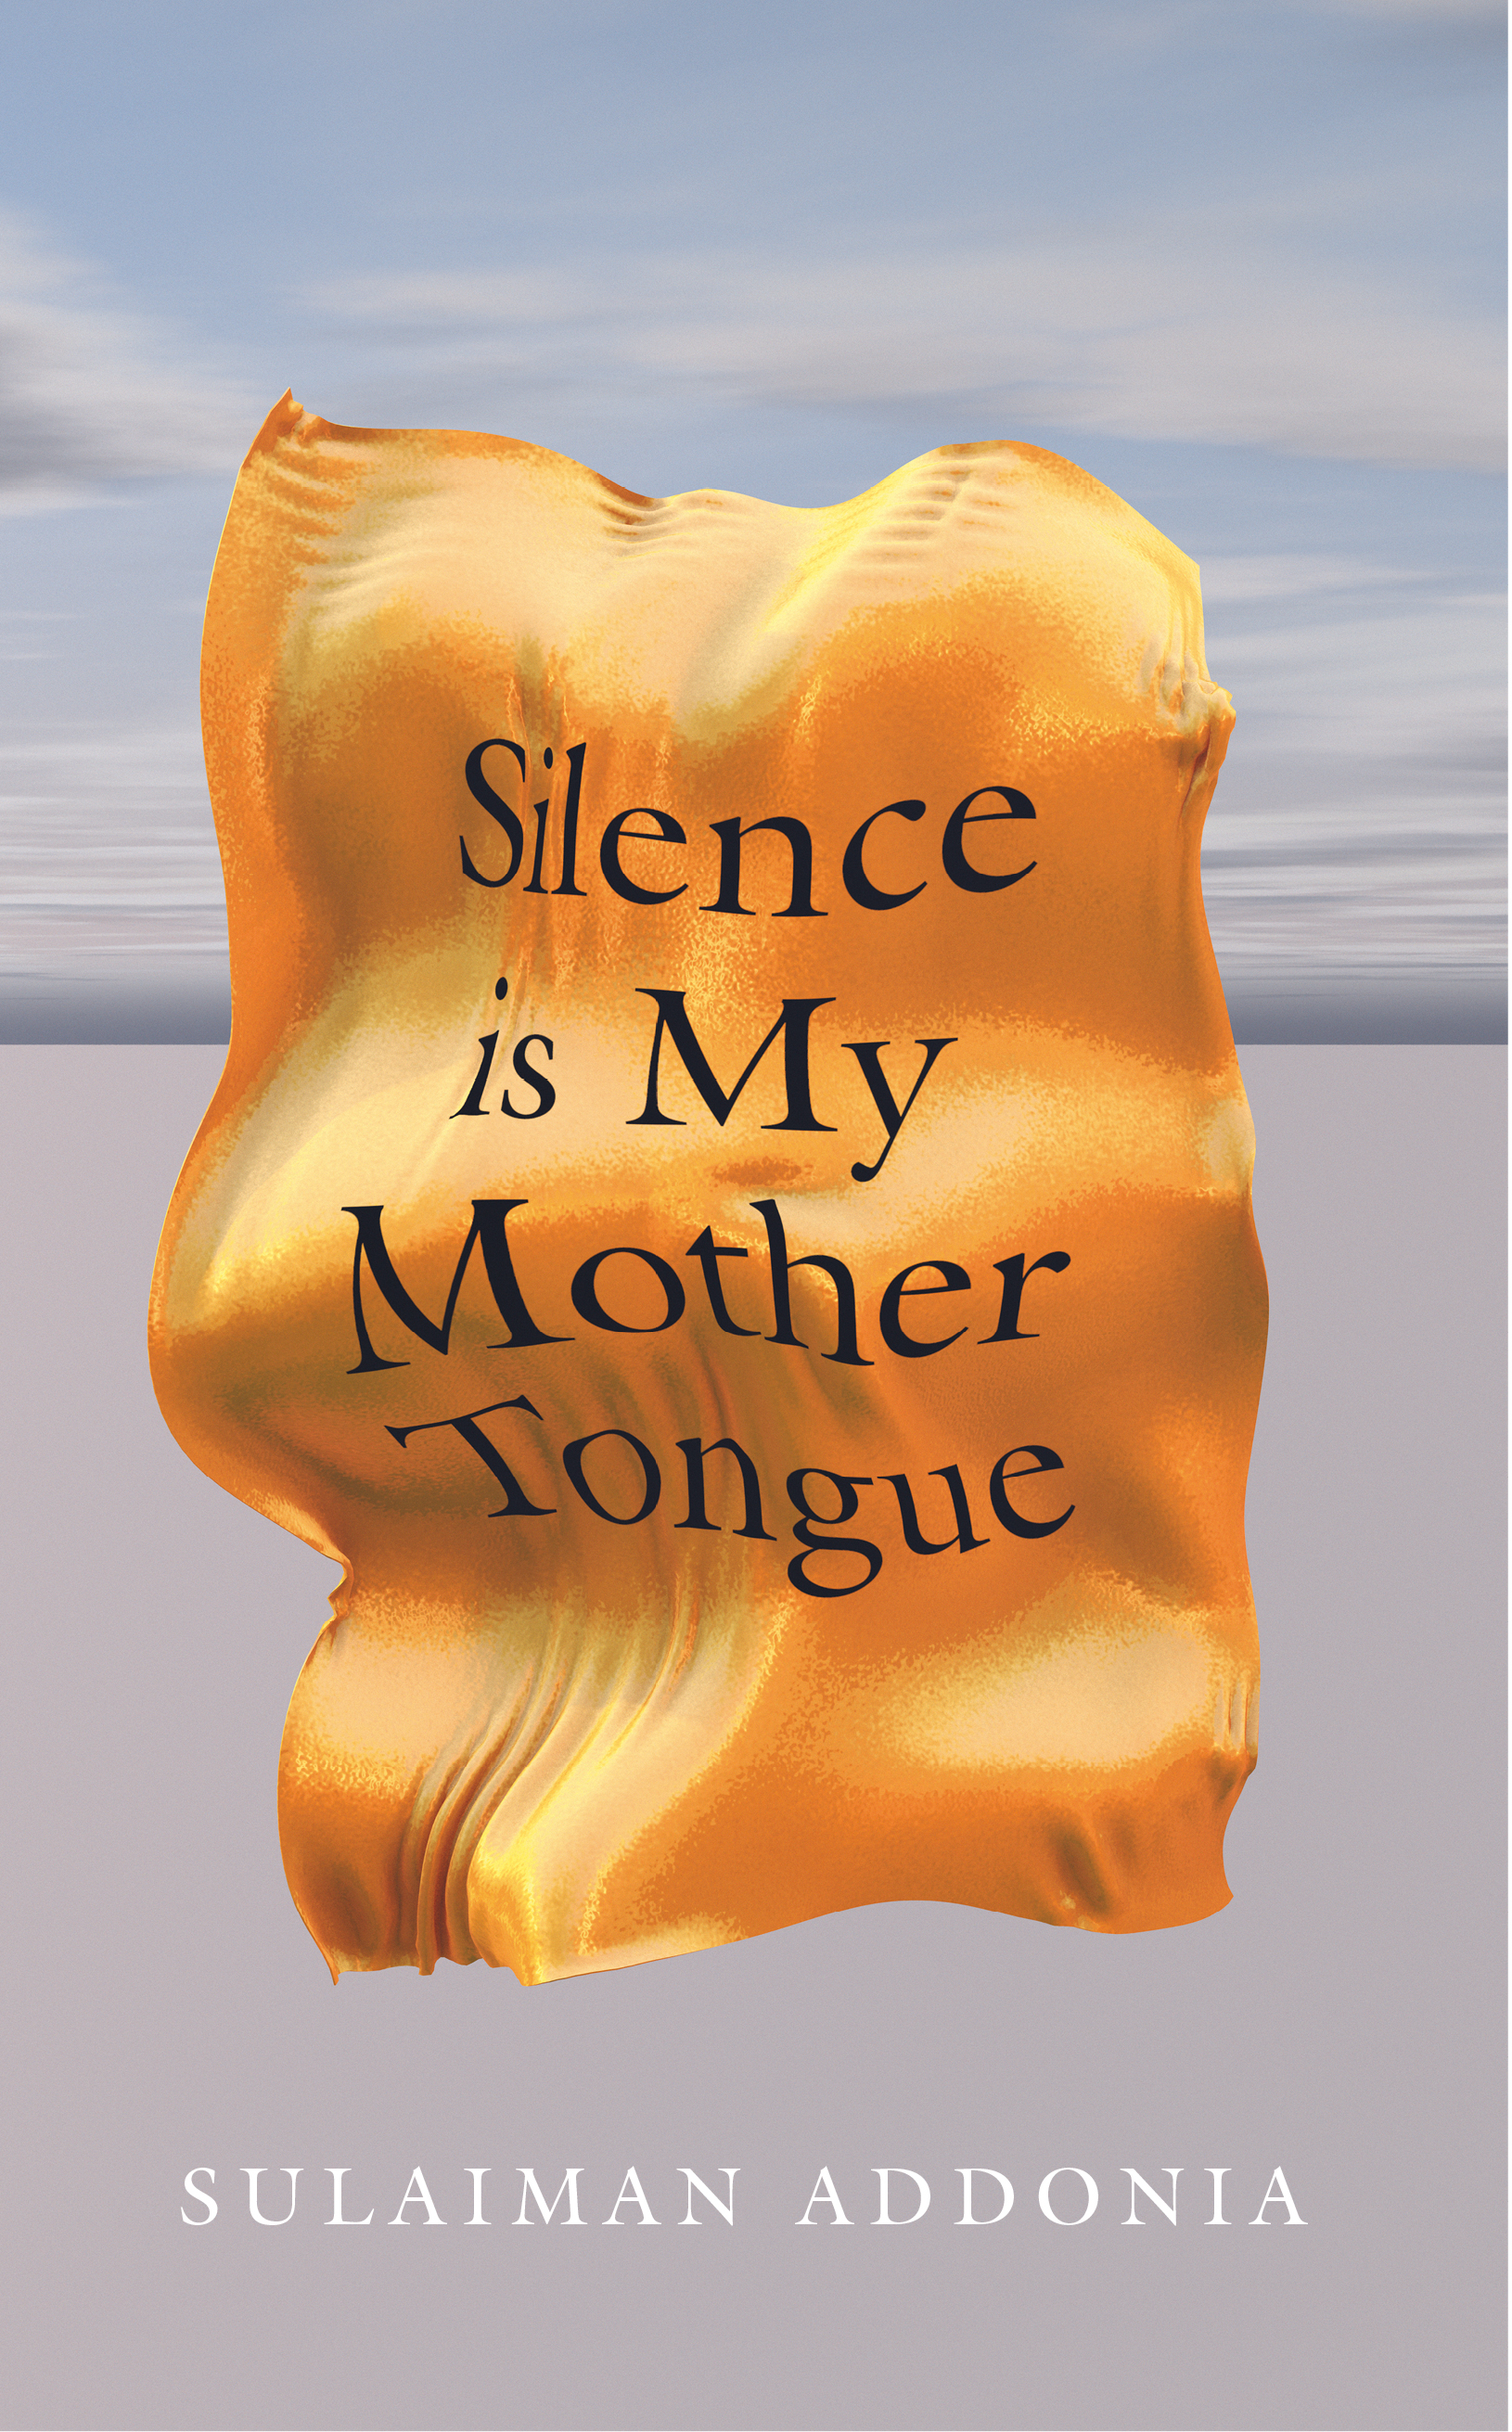 Silence is My Mother Tongue cover image  hires.jpg